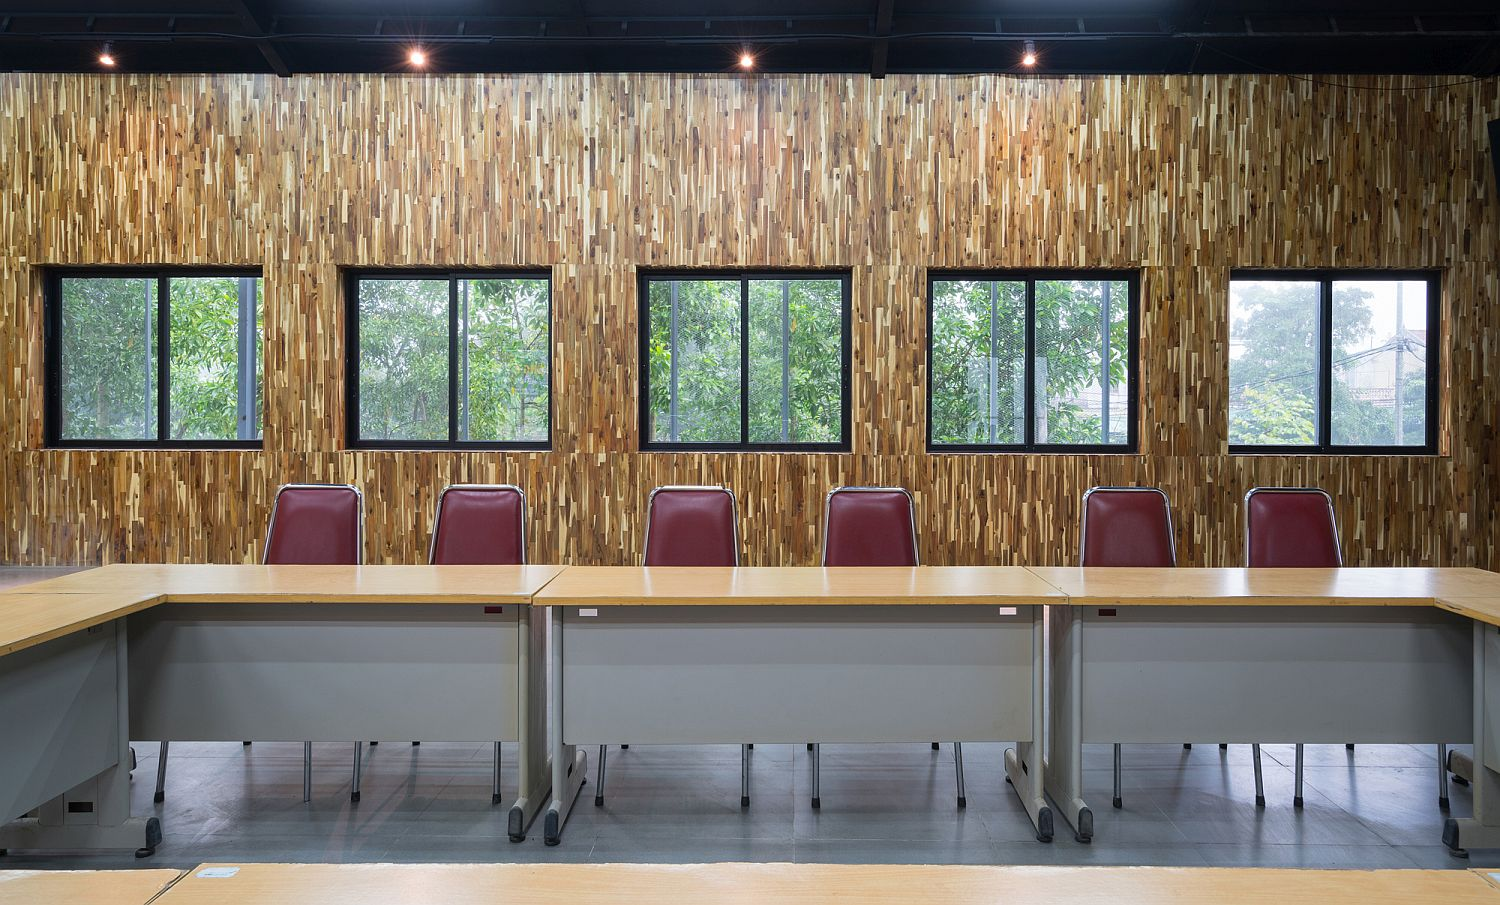 Conference room with wooden walls and track lighting